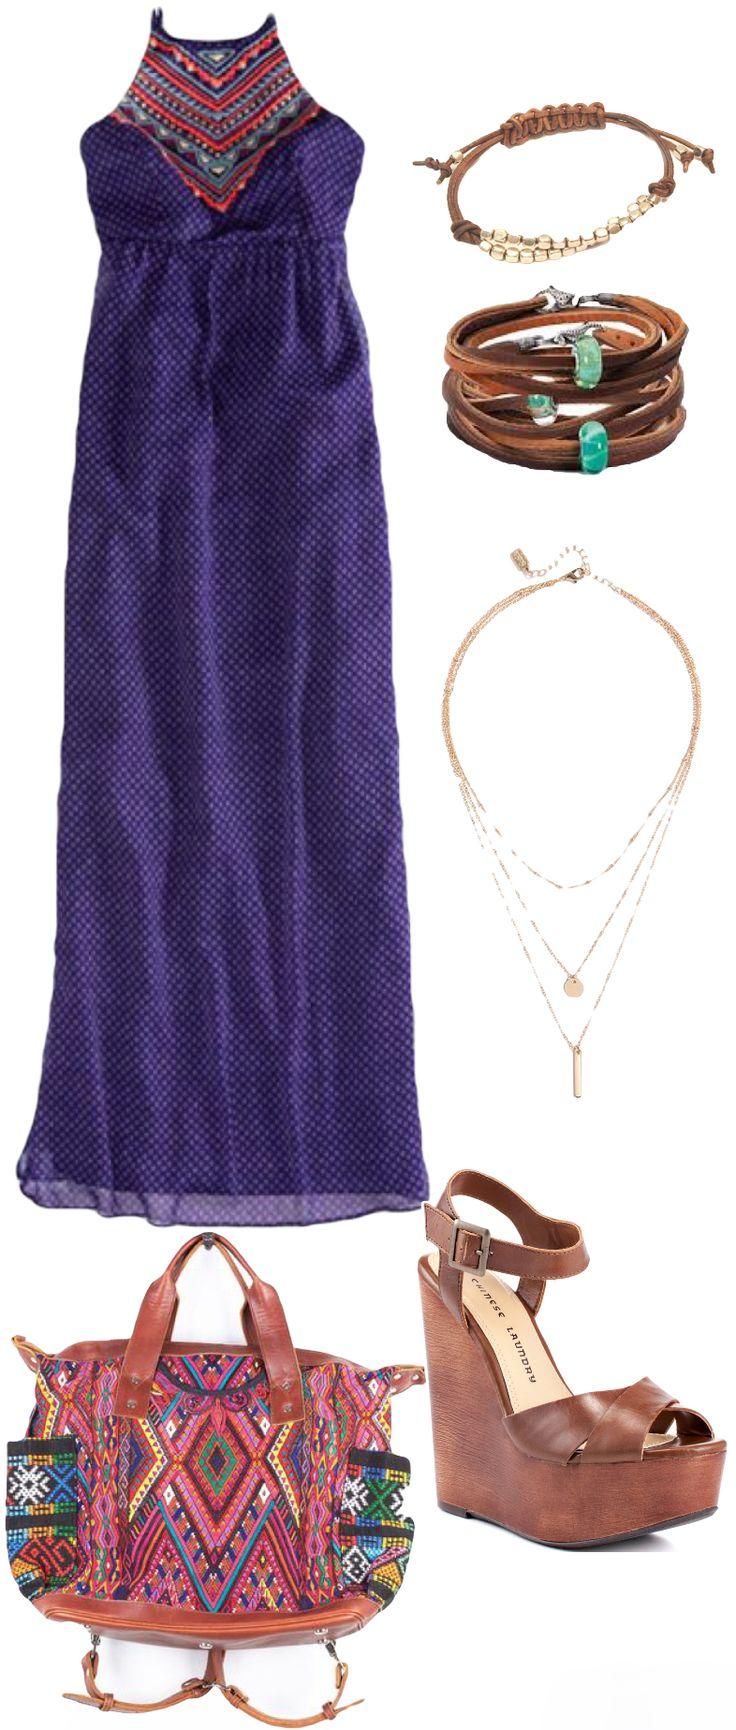 Beautiful and Vibrant!  Its easy to wear this outfit to a brunch the beach or date night!  All with this outfit.  Check out our styles and boho outfits at ZillyChic.com